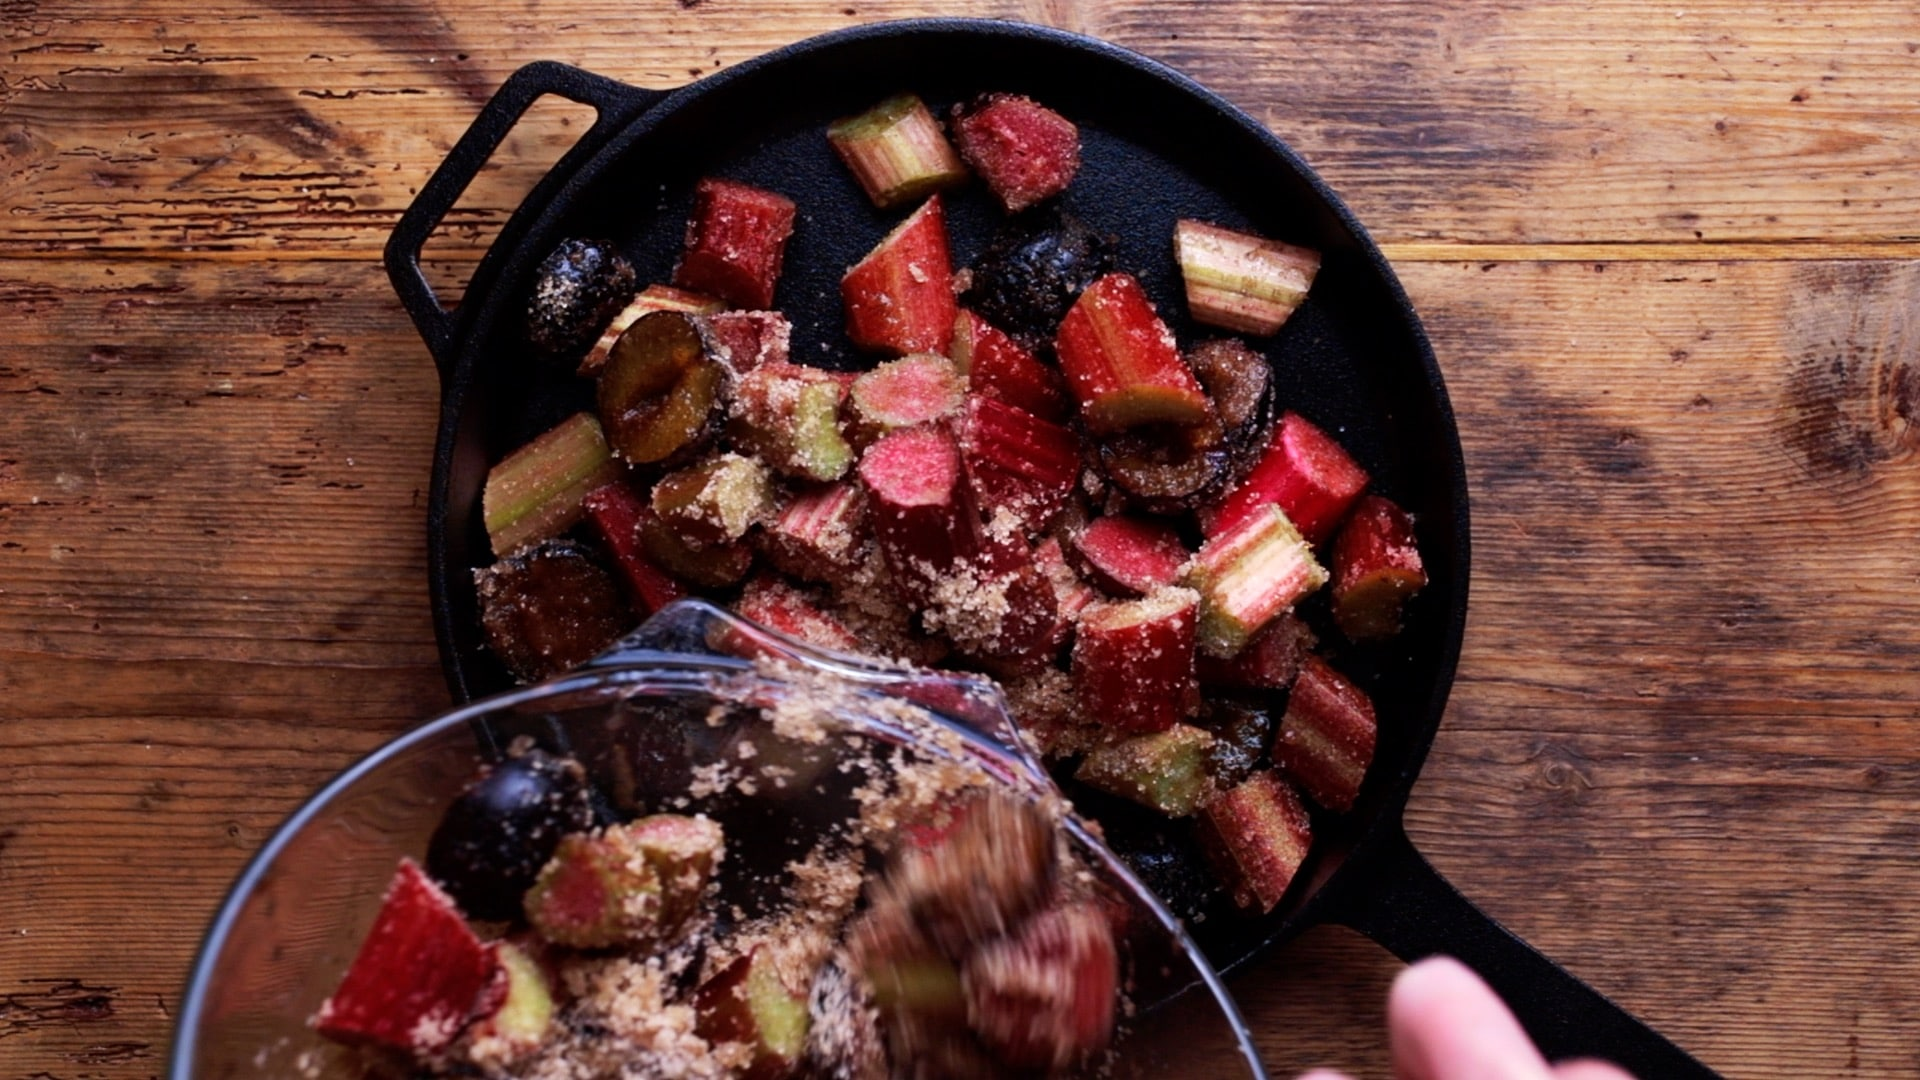 sugared rhubarb and plums being transfered to baking pan